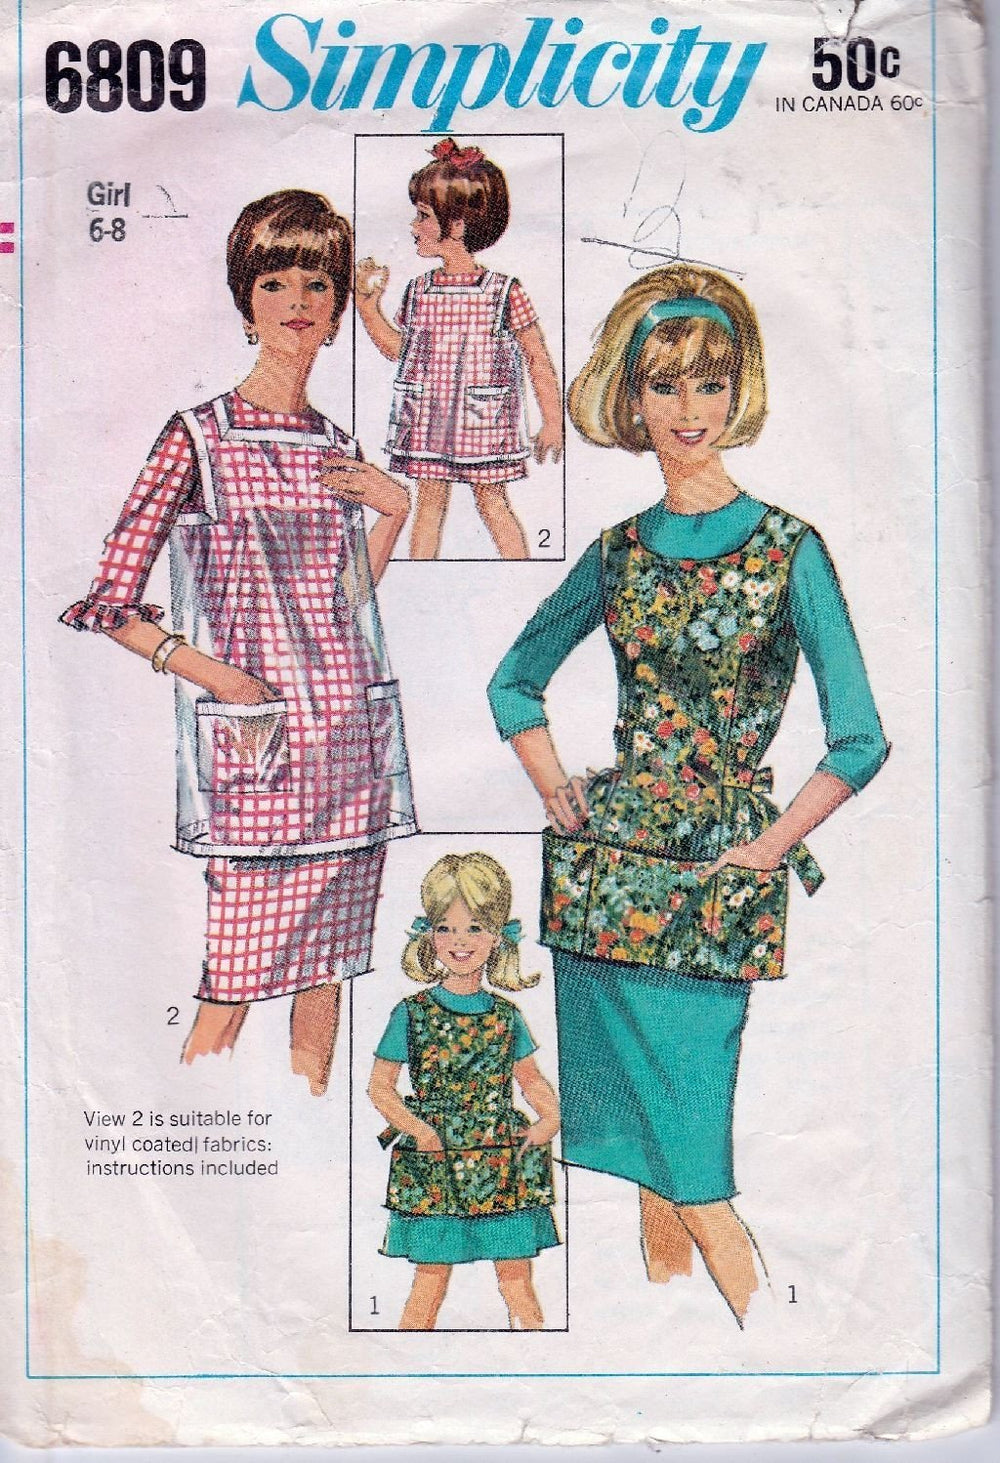 Simplicity 6809 Vintage Sewing Pattern Childs Cobbler Apron Back Closing - VintageStitching - Vintage Sewing Patterns